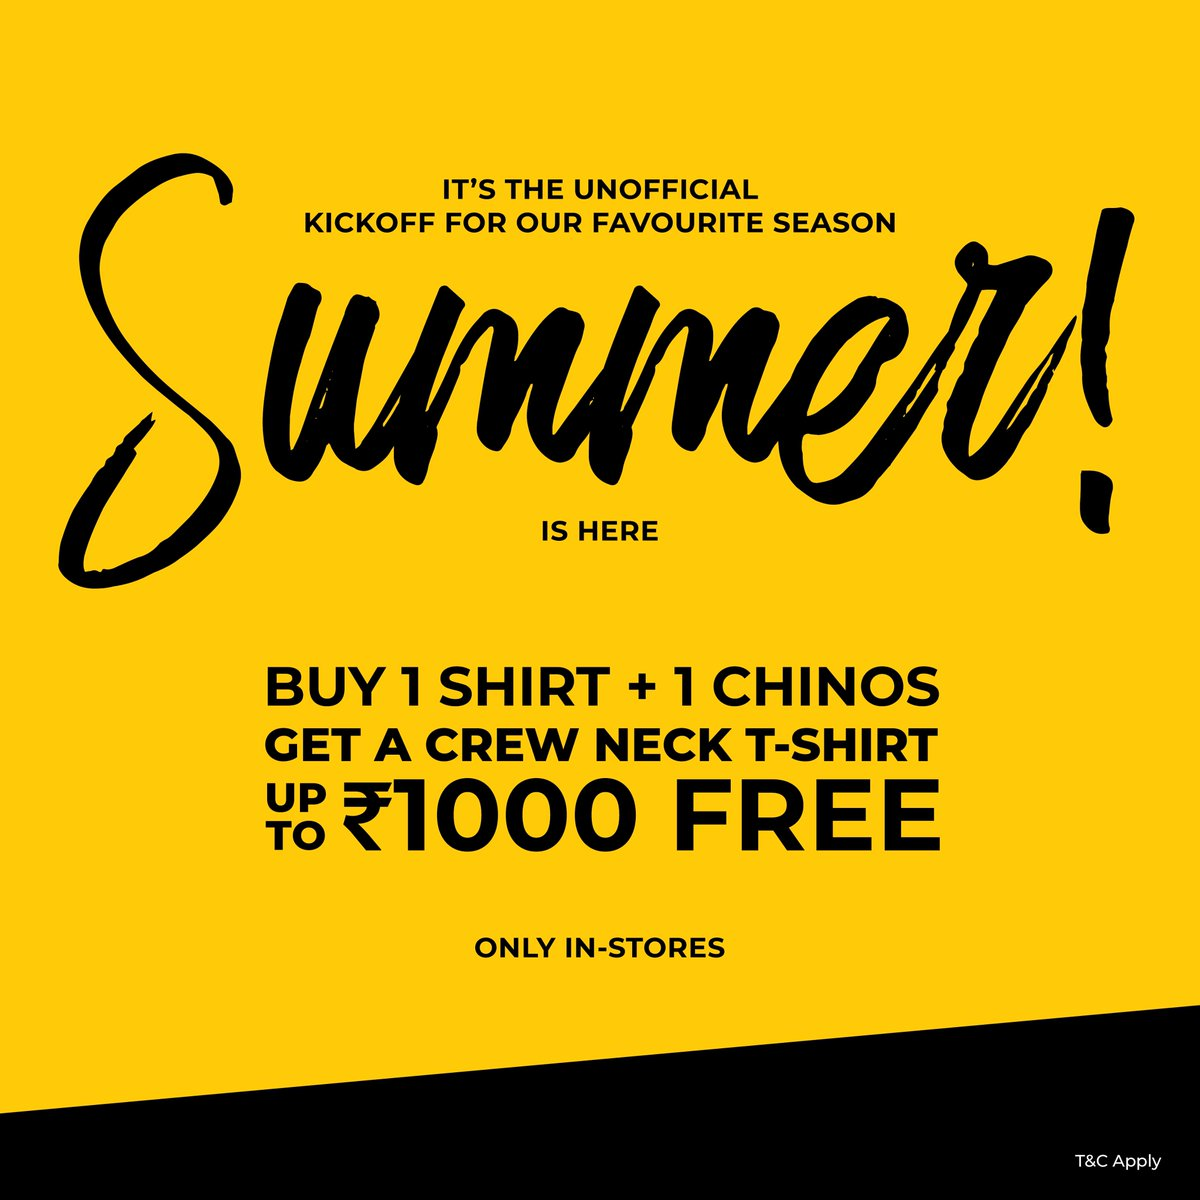 We have some good news: Because you're our valued customers, we have some special offers coming your way.  Now is the time to make your move 🛍️  #beinghumanclothing #lovecareshare #beinghuman